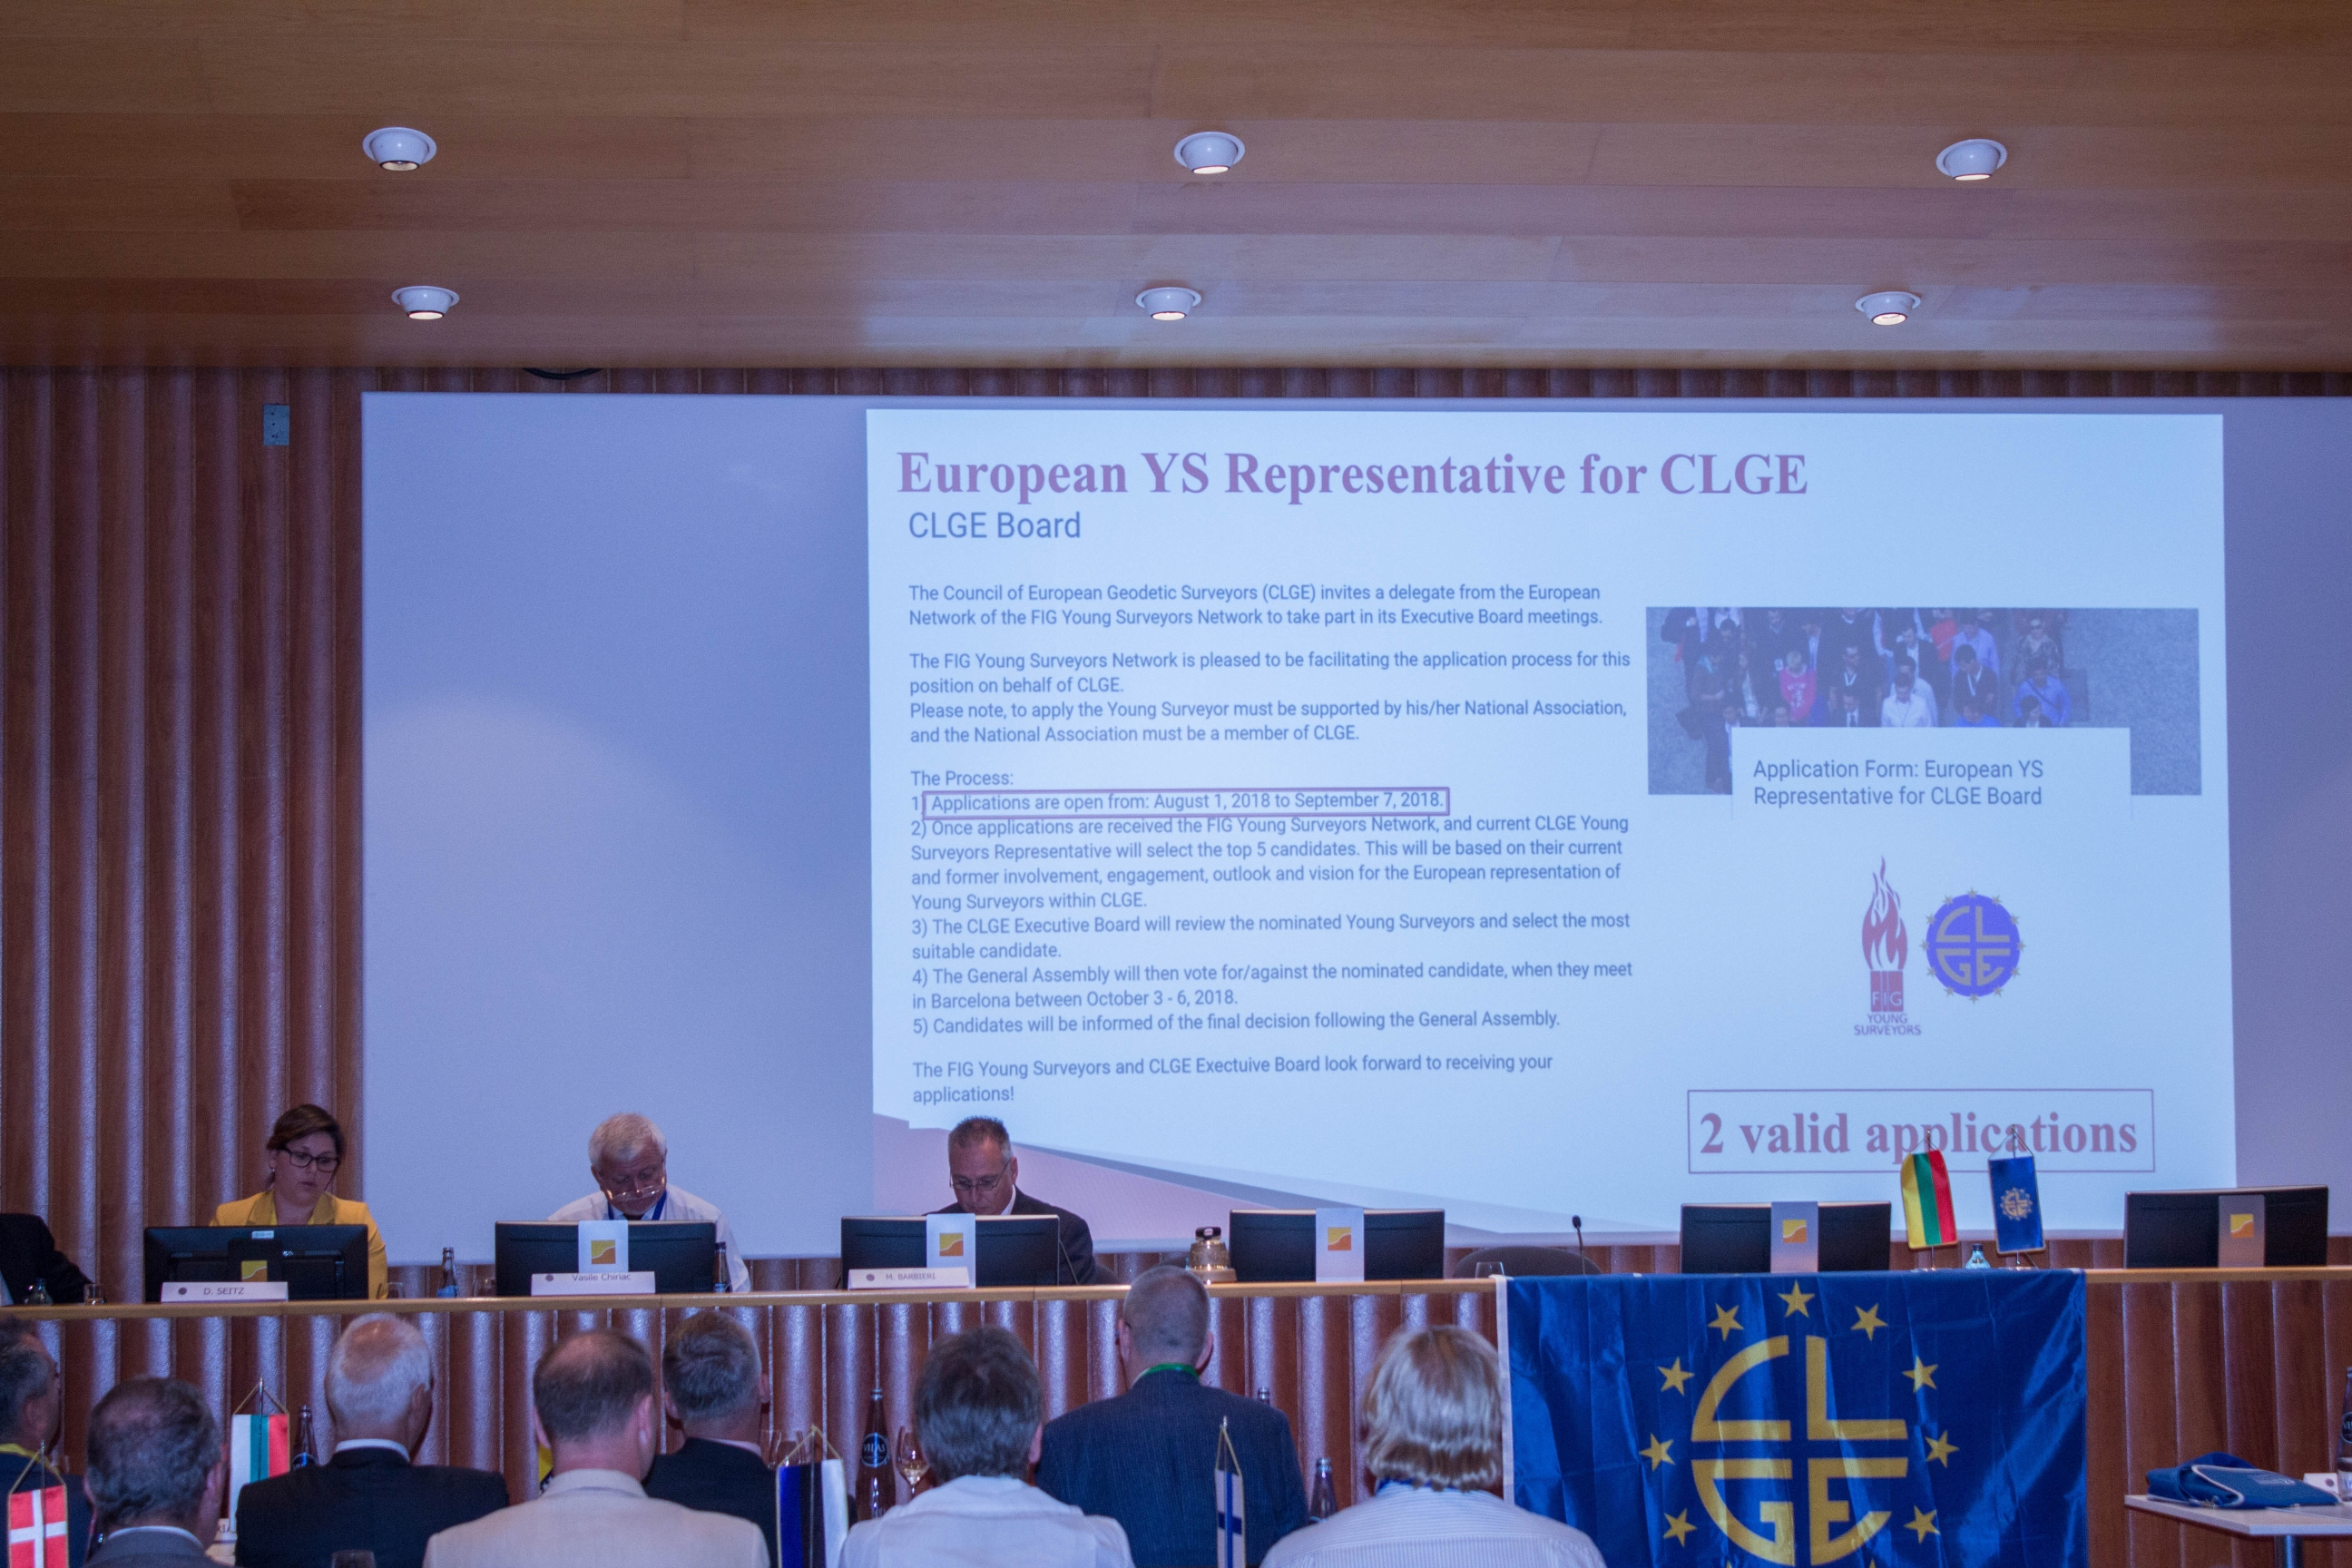 clge-general-assembly-barcelona-2018_44329715315_o.jpg